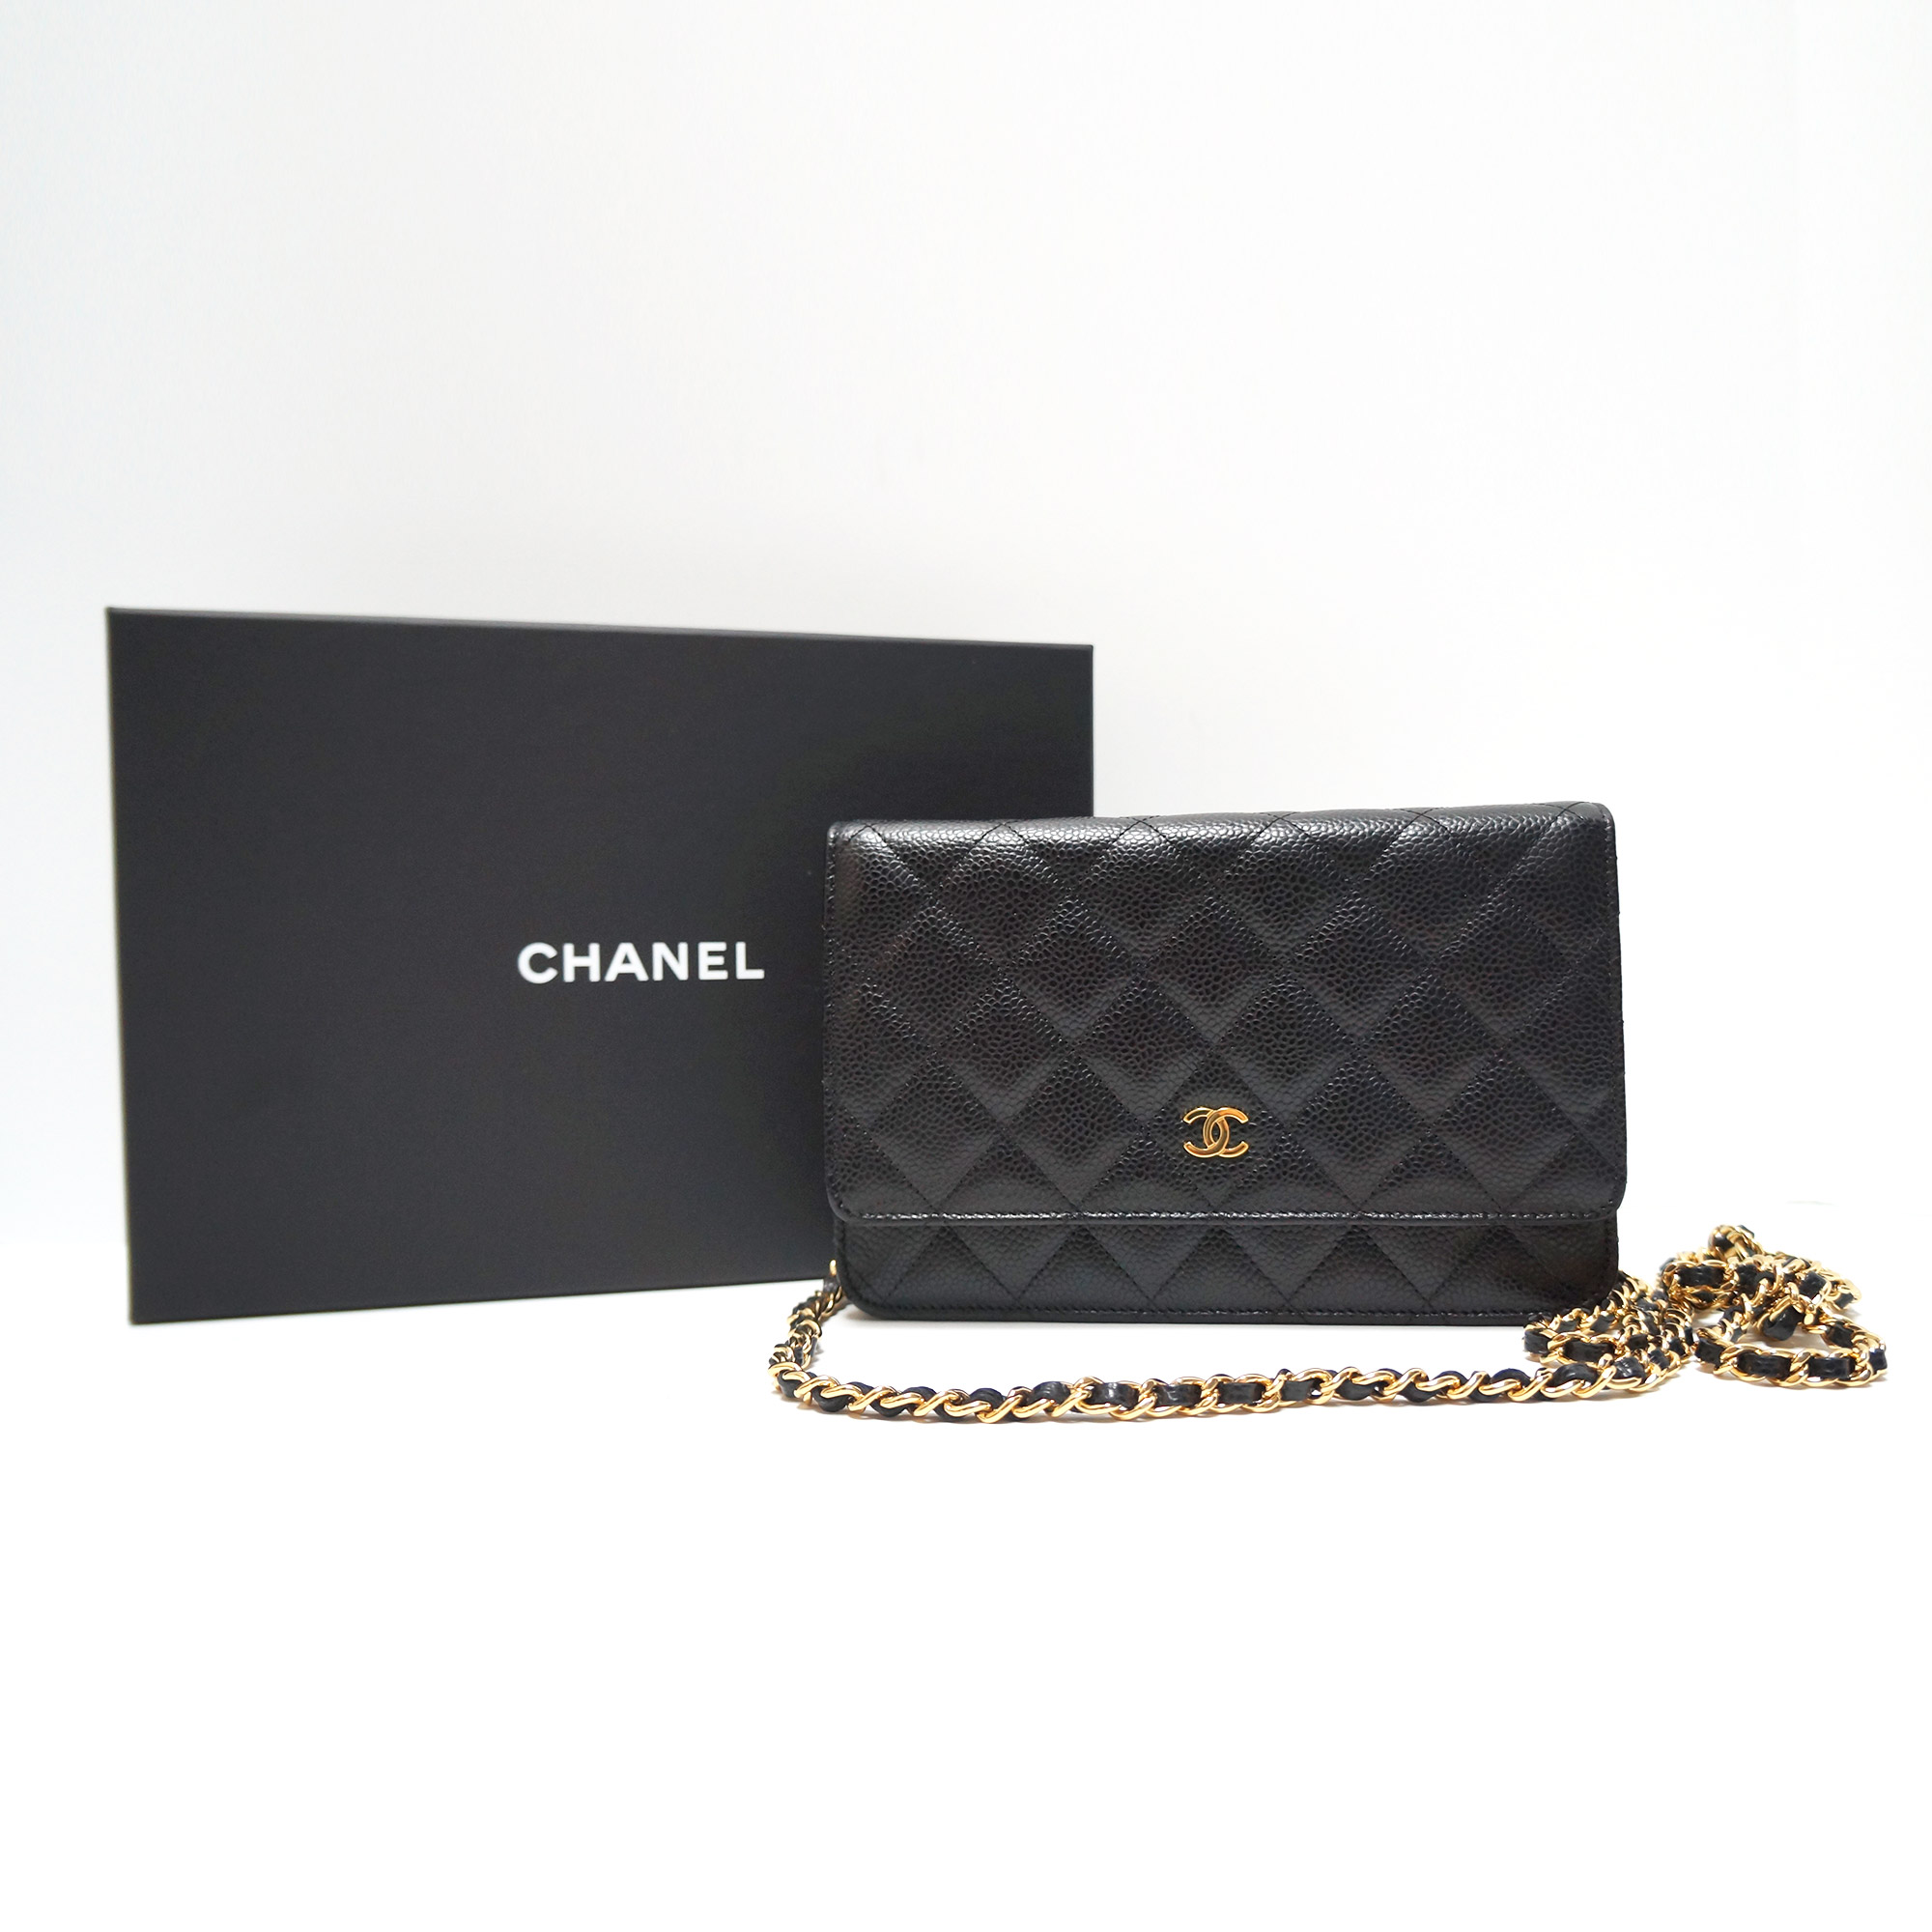 c66c7bcd214483 Chanel WOC Wallet On Chain Bag Crossbody Black Caviar Leather Gold ...